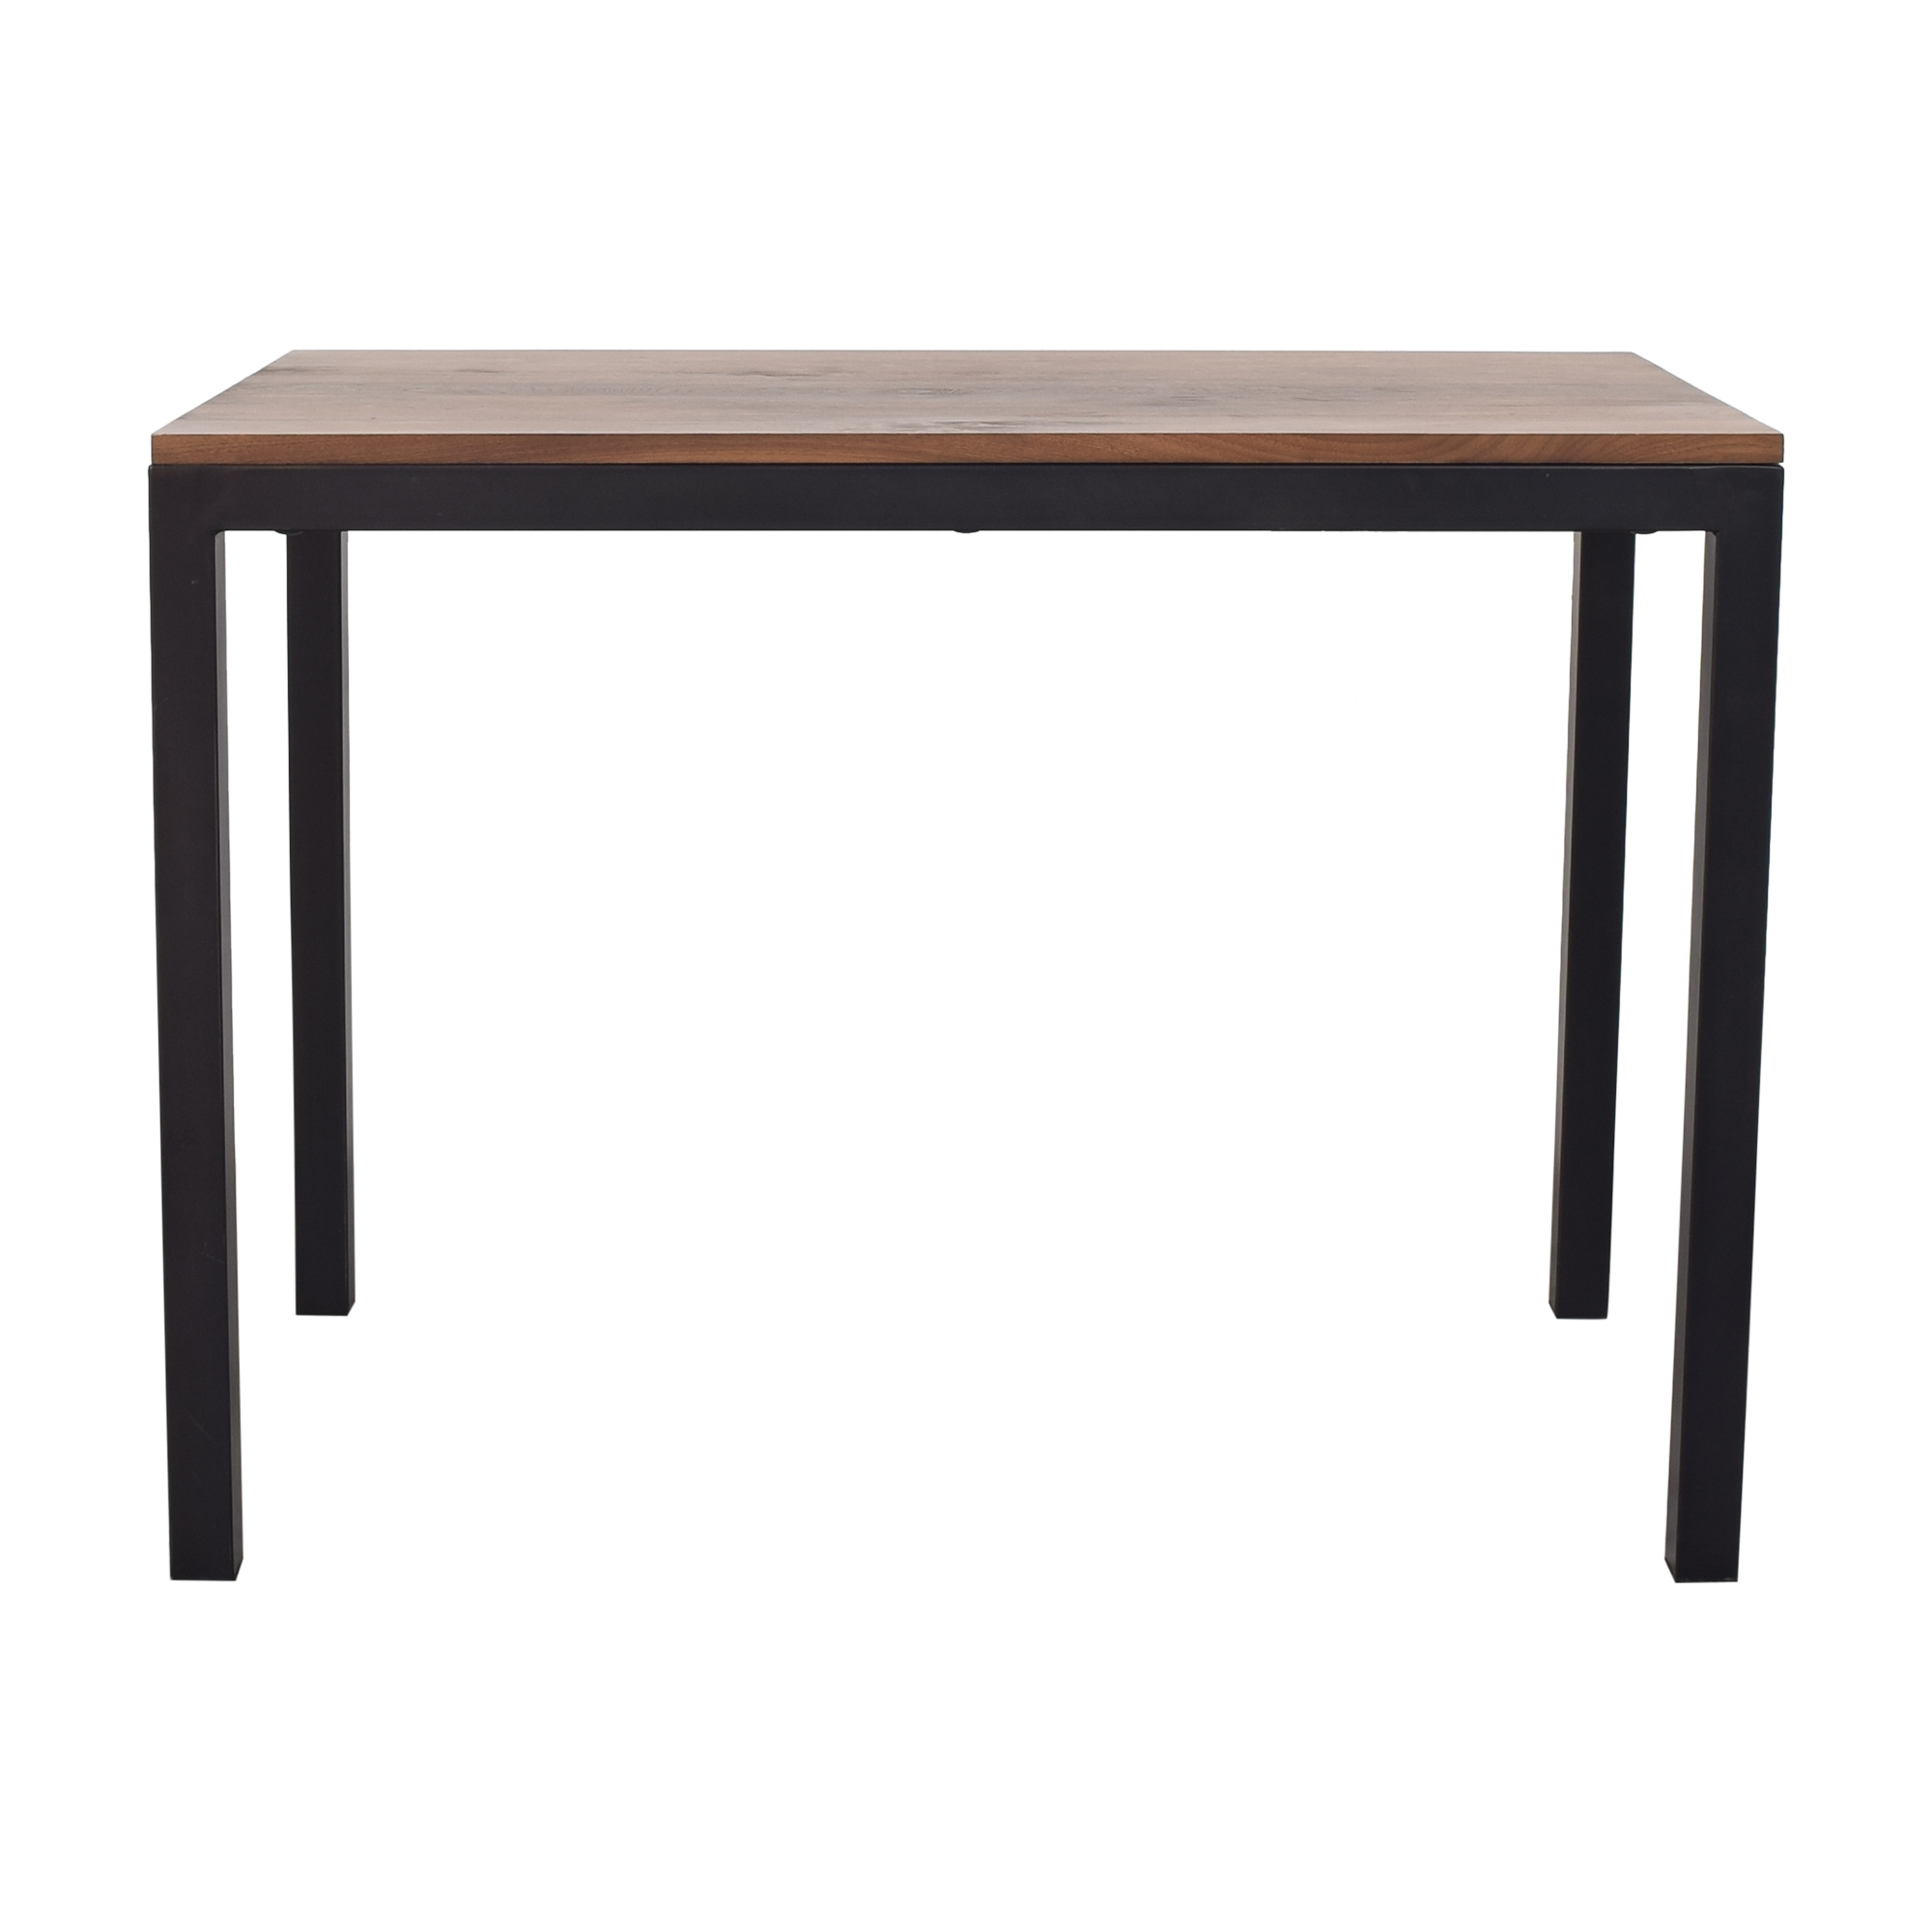 Crate & Barrel Crate & Barrel Custom Parsons Table brown